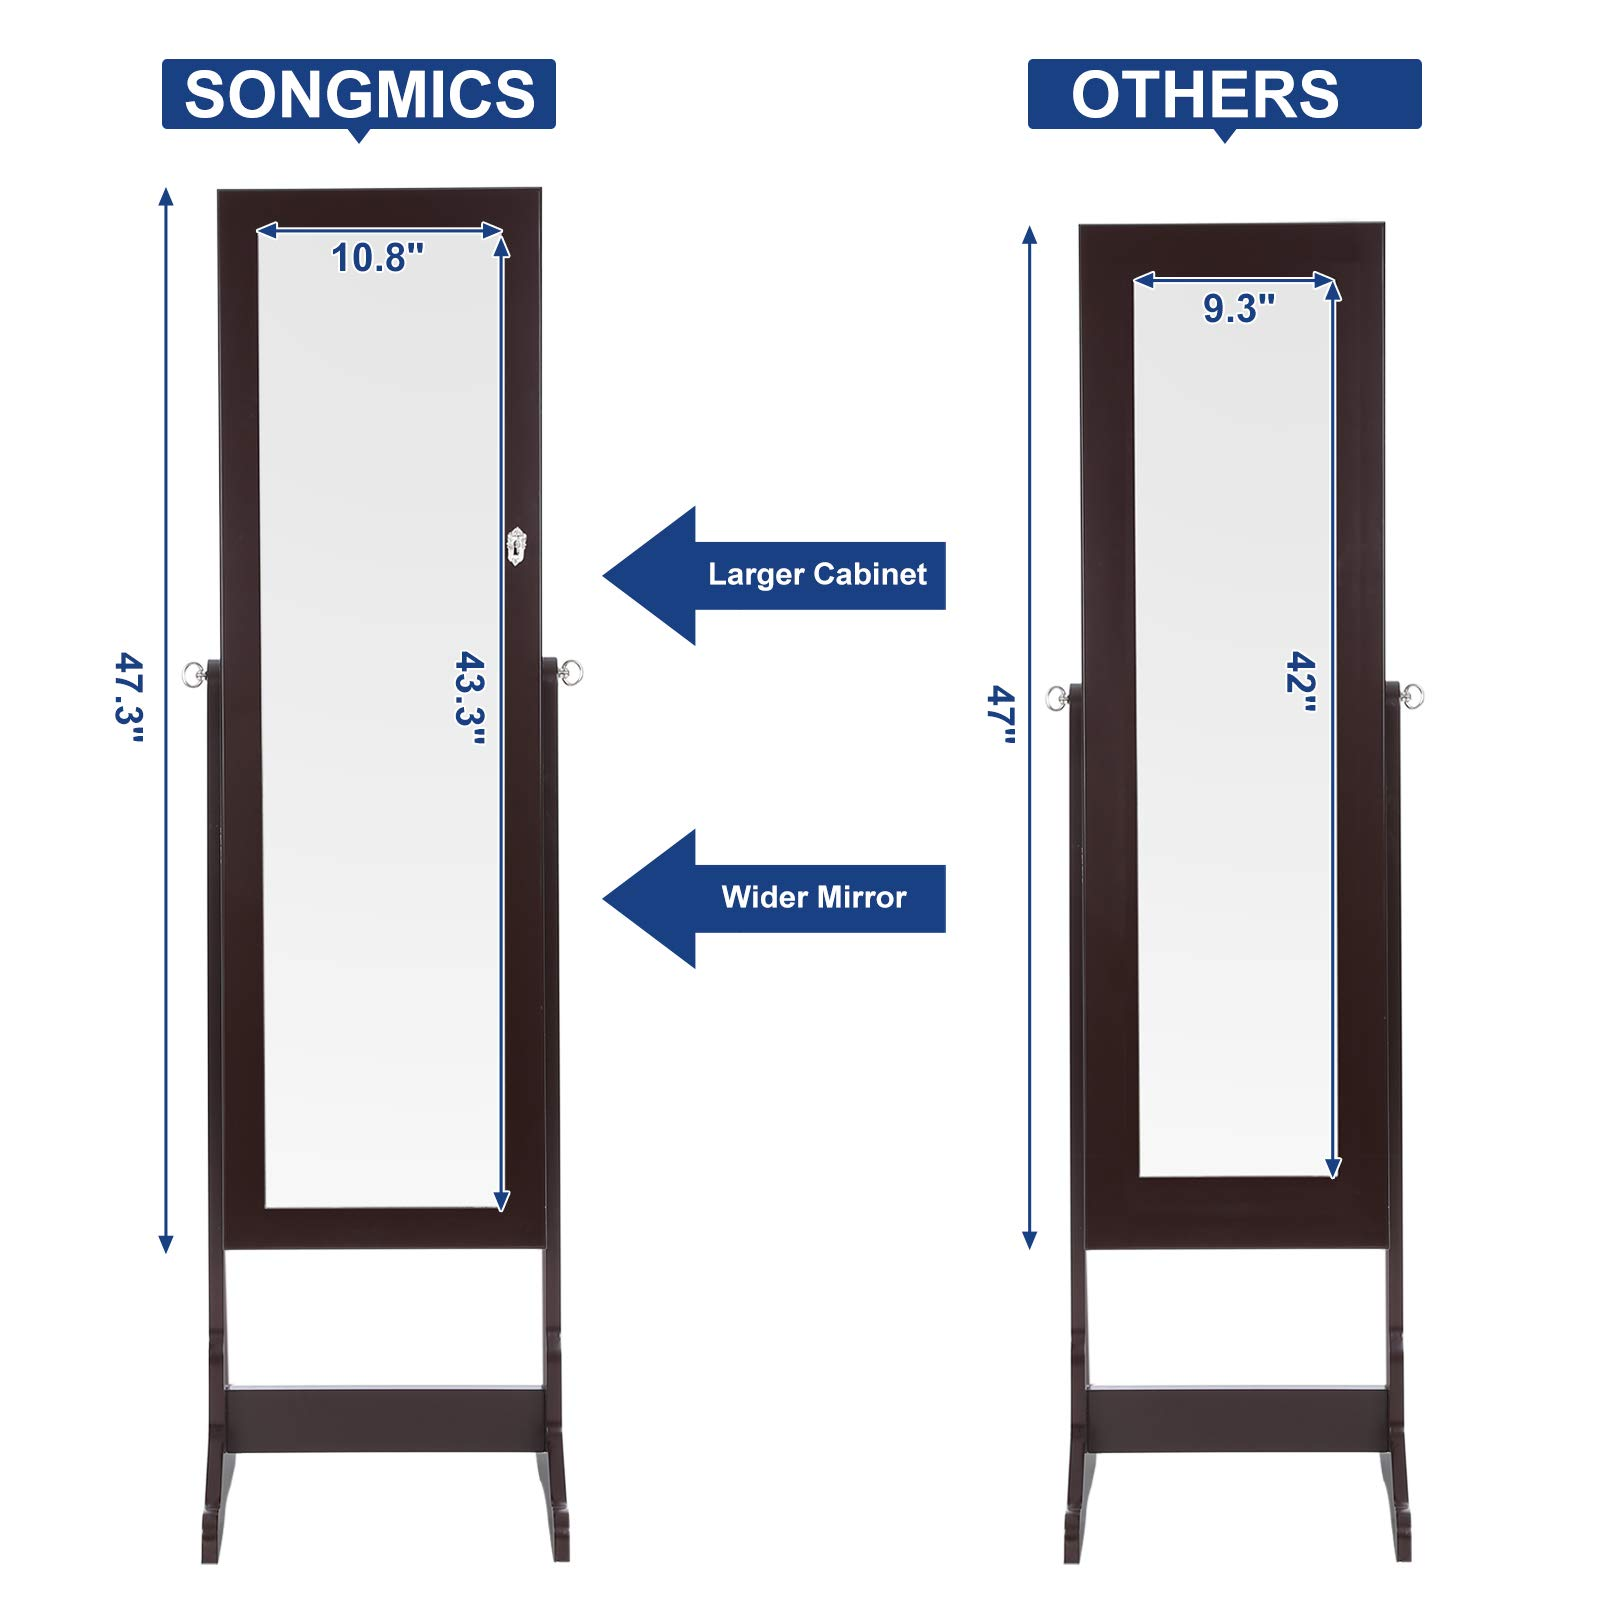 SONGMICS 6 LEDs Mirror Jewelry Cabinet Lockable Standing Mirrored Jewelry Armoire Organizer 2 Drawers Brown Mother's Day Gift UJJC94K by SONGMICS (Image #5)